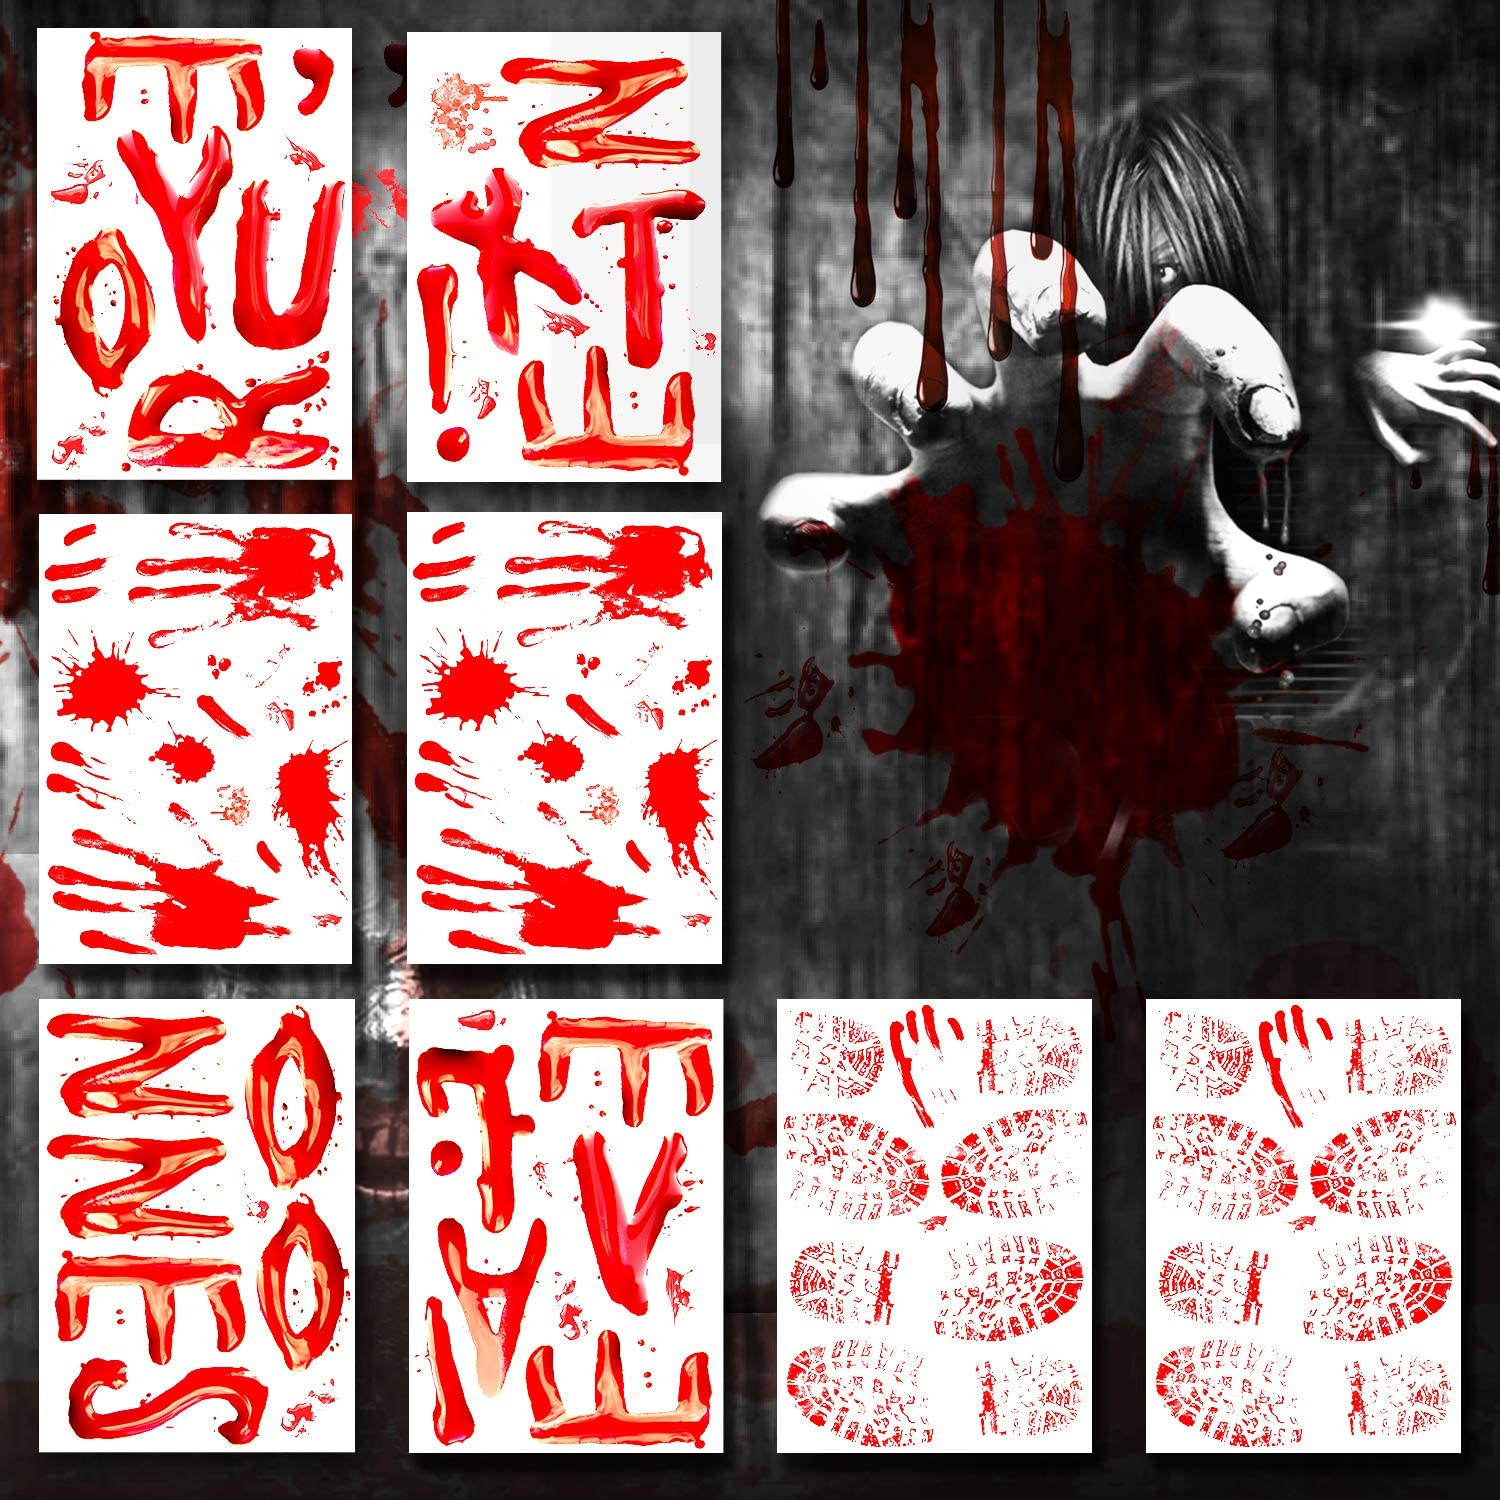 120PCS Halloween Decorations Window Decals Clings Wall Stickers Decor, Bloody Handprint Footprint Horror Bathroom Zombie Party Decorations Supplies - You're Next, No One Leaves